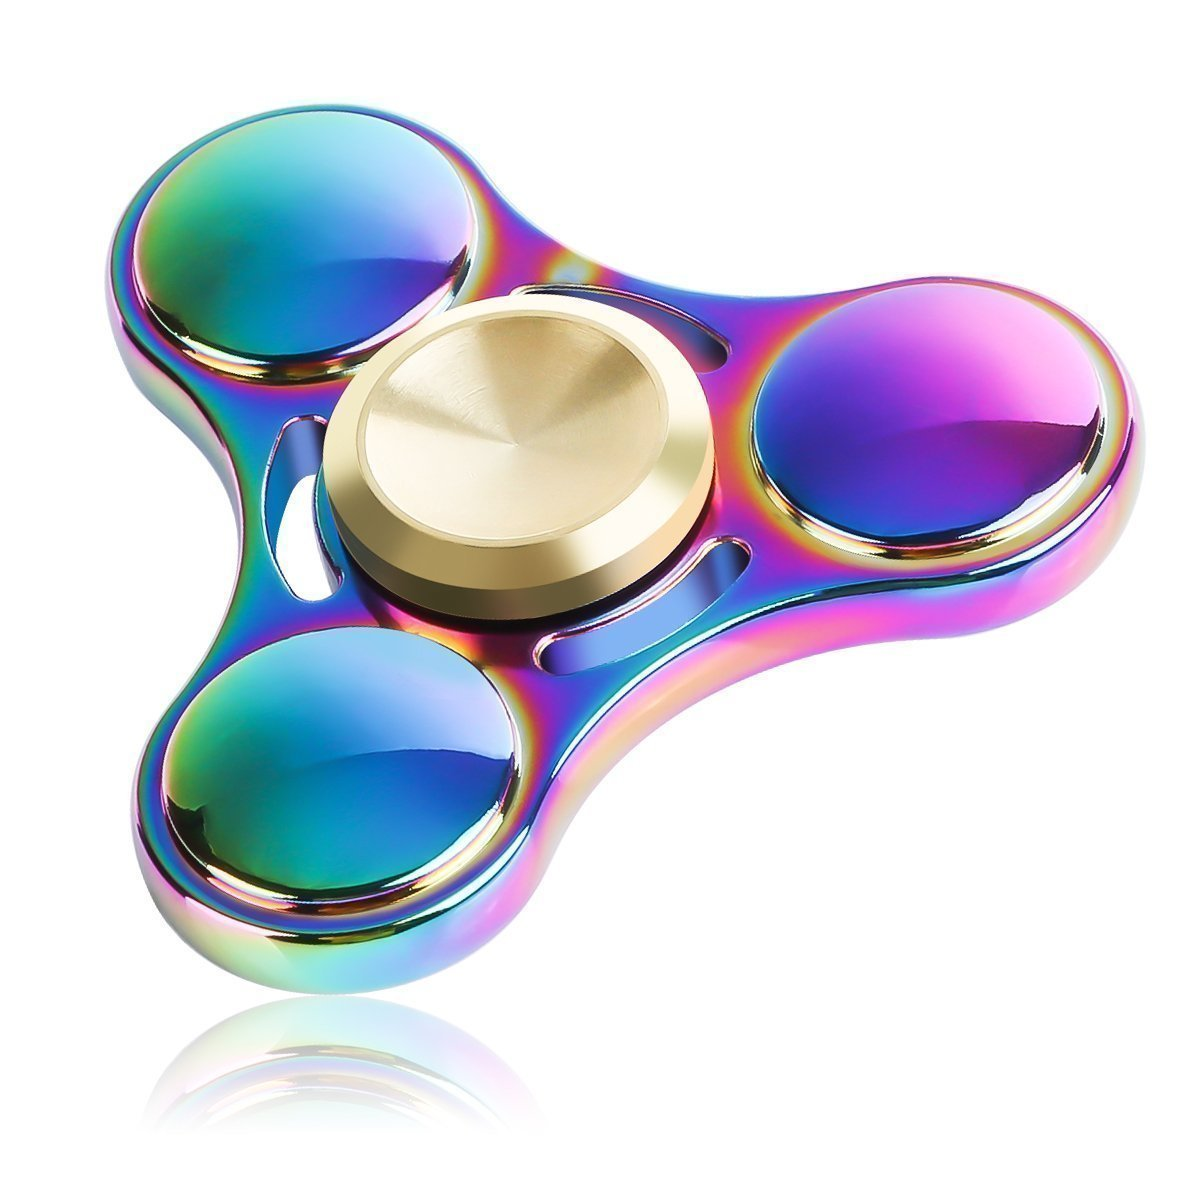 61OgEQbc38L. SL1200  - UFO SPINNER Fidget Spinner Toy Ultra Durable Stainless Steel Bearing High Speed 3-5 Min Spins Precision Metal Hand spinner EDC ADHD Focus Anxiety Stress Relief Boredom Killing Time Toys